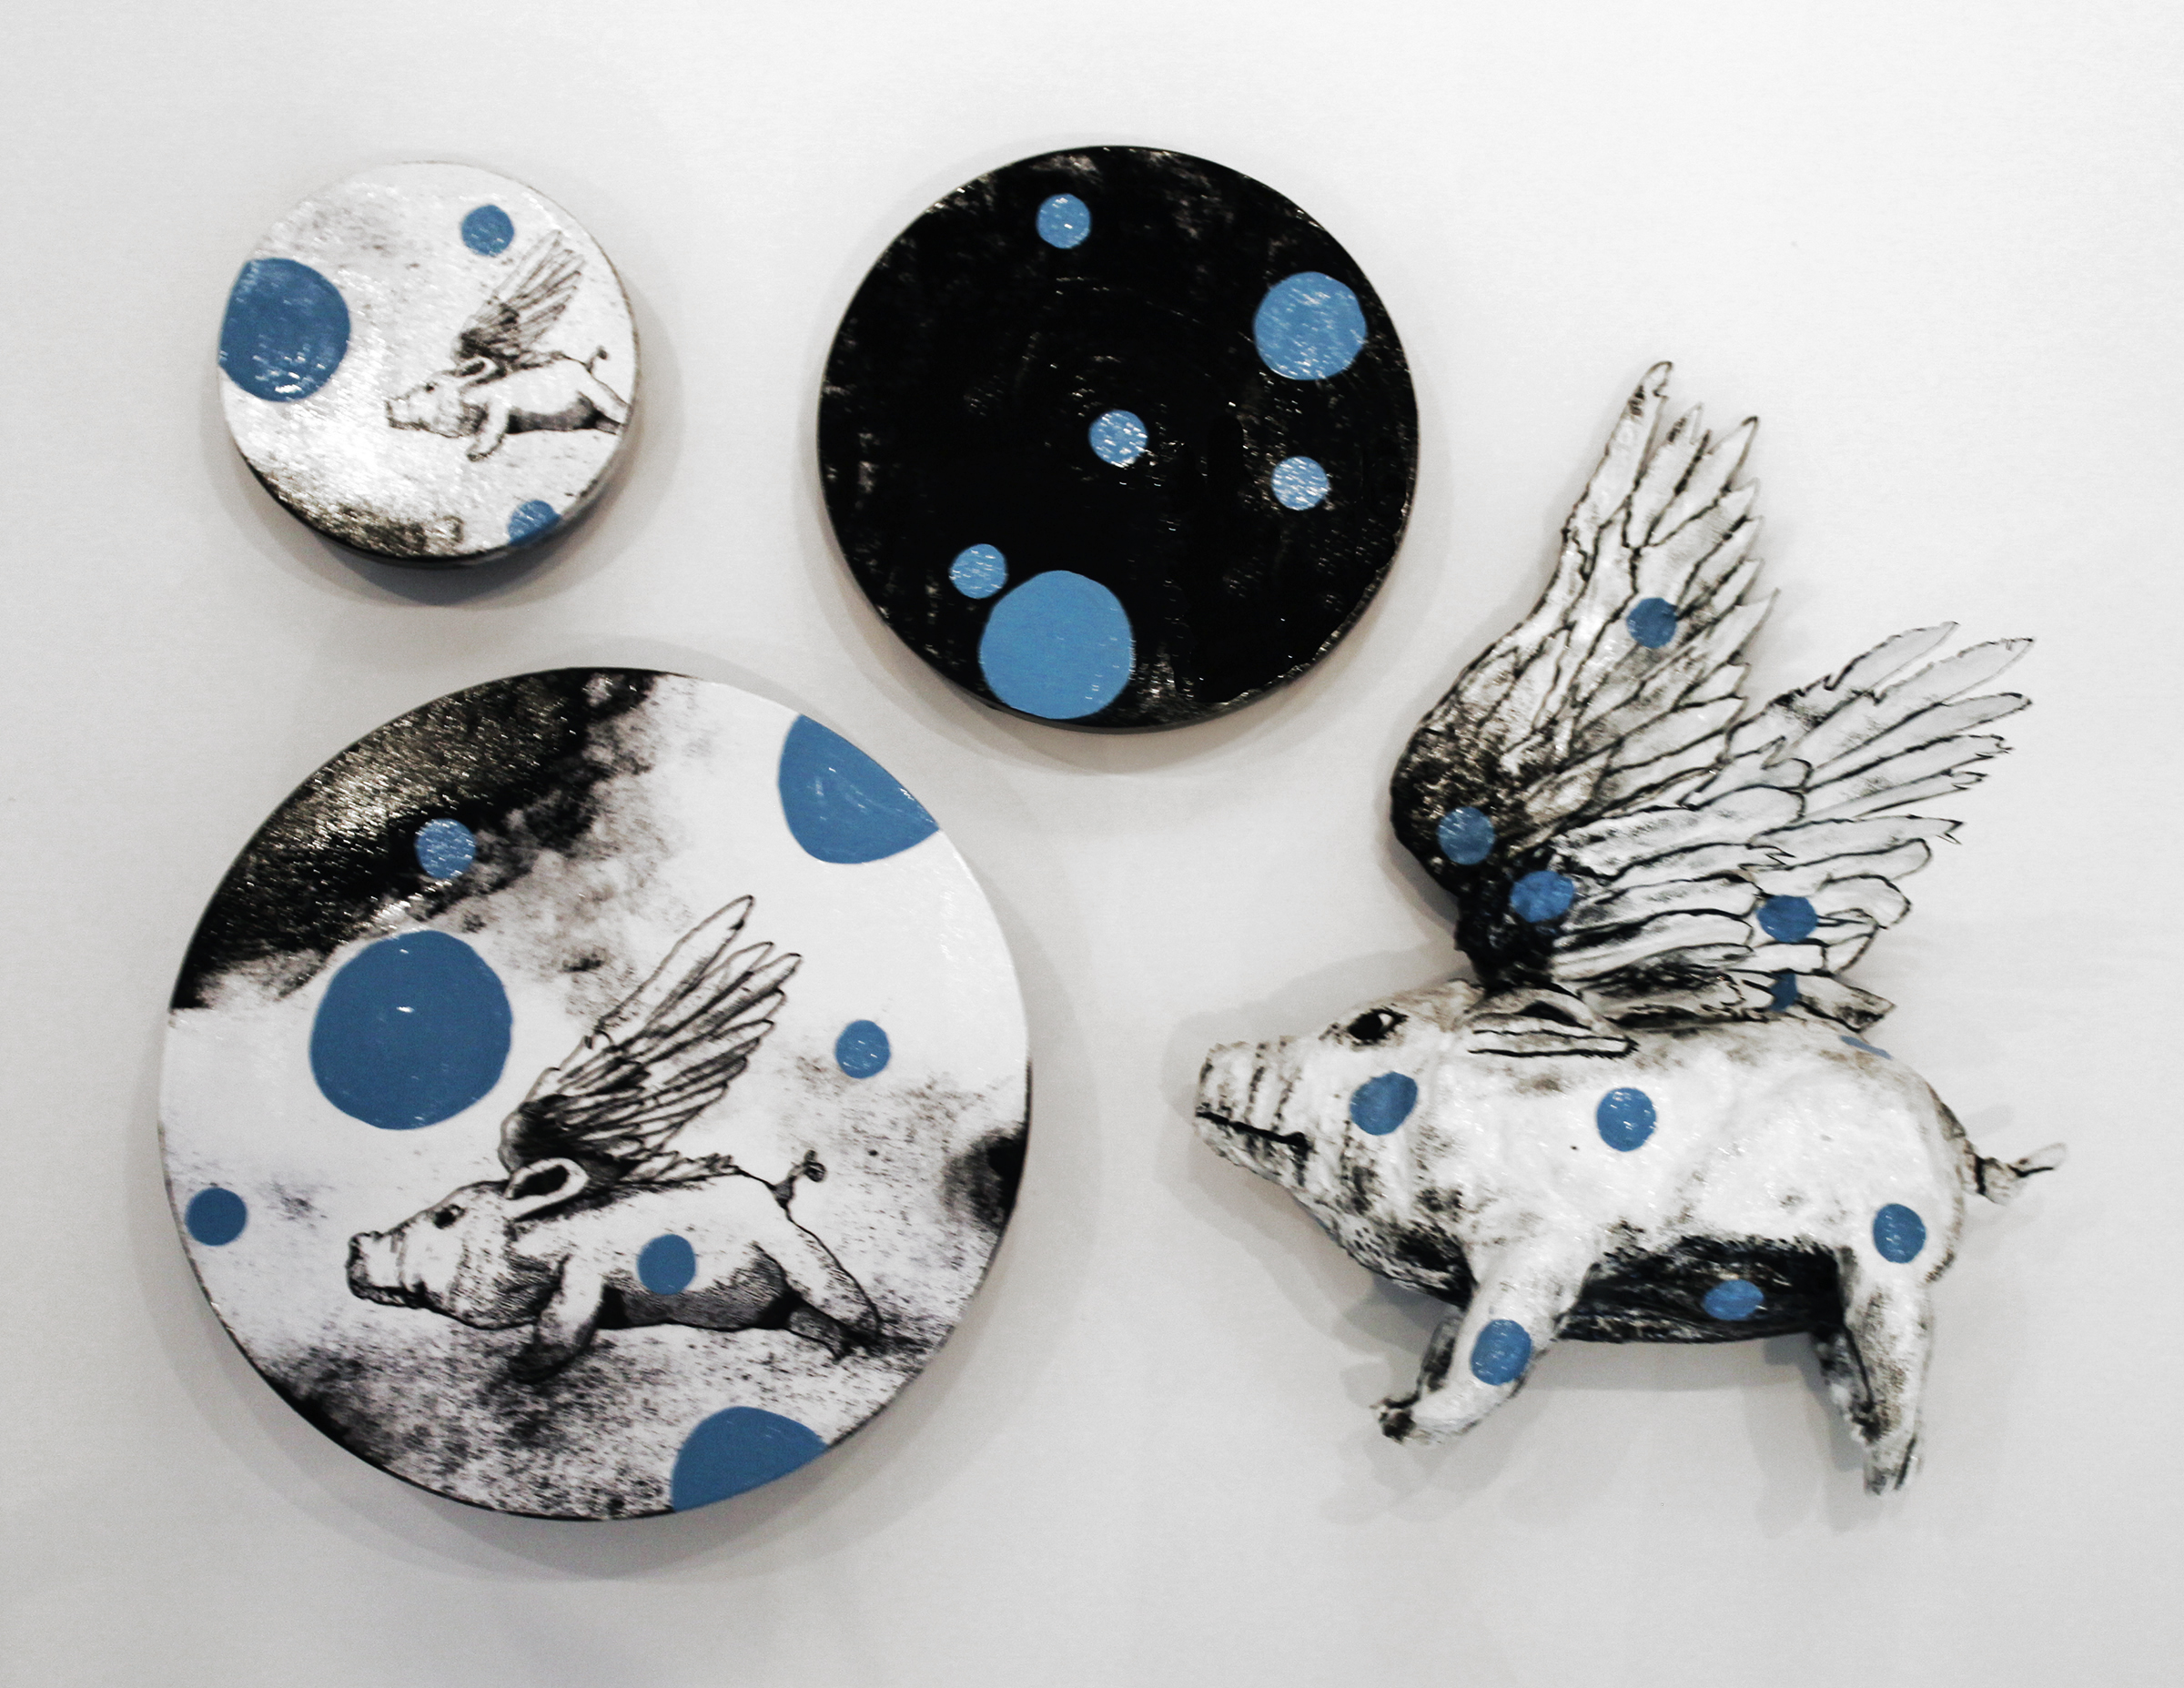 """When Pigs Fly Installation, 2016, Mixed Media on 3 panels 8"""", 12"""" and 16"""" and Pig sculpture 24""""H x 17""""W x 14""""D"""